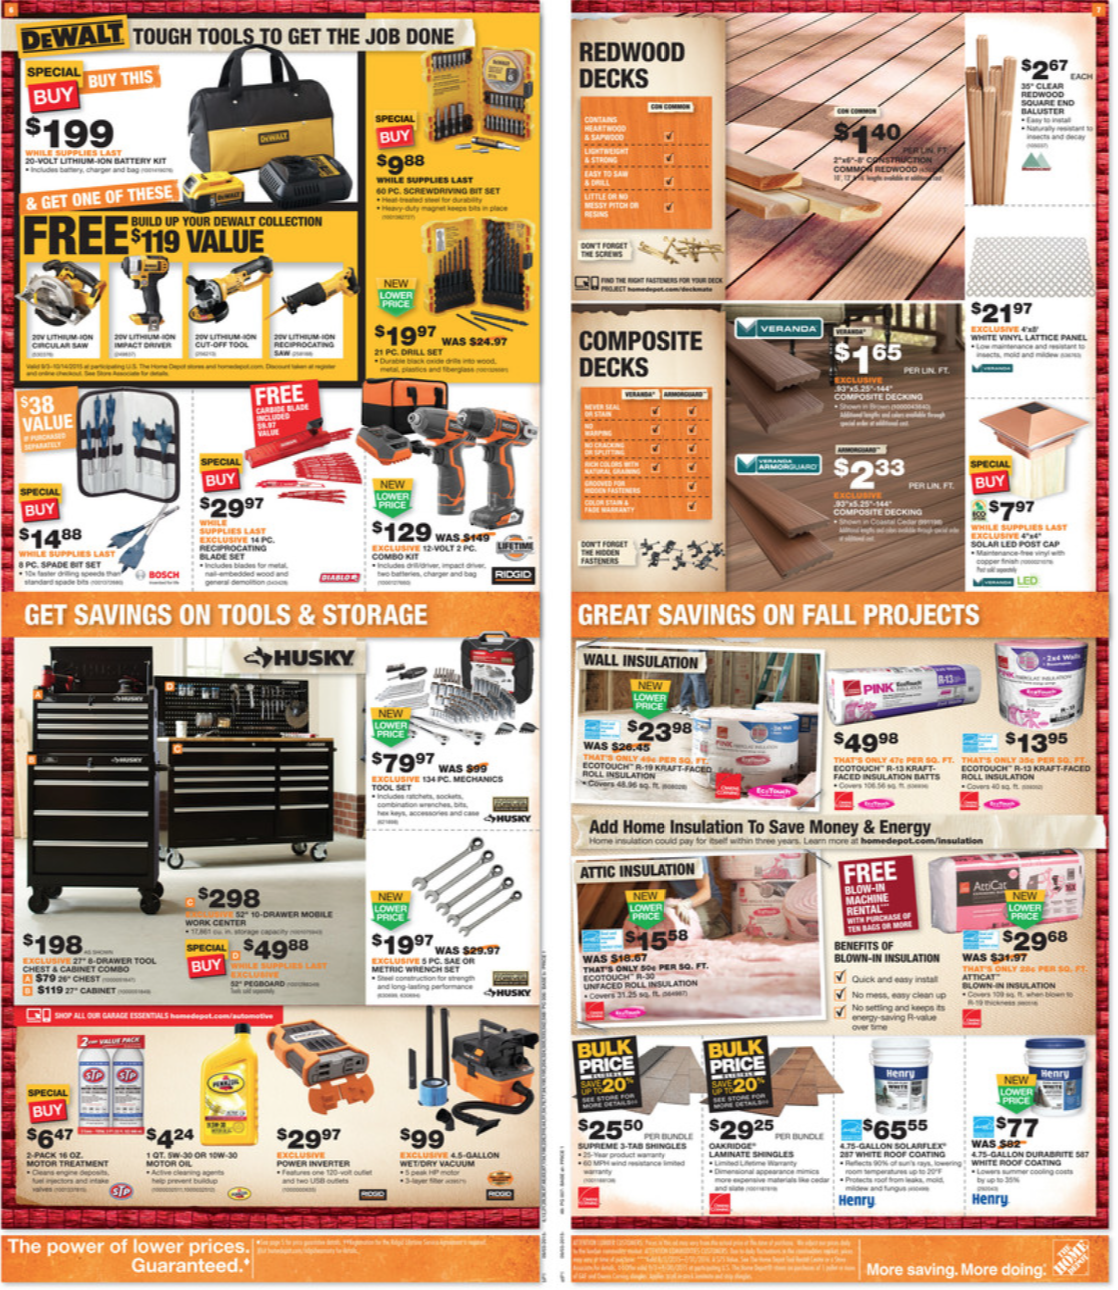 Home Depot Labor Day Deals & Sales. Home Depot Labor Day will be here before you know it. Labor Day brought us a number of great deals for Home & Garden and more. savers. Aug We are looking for Home Depot Labor Day Deals Sep We leak the Home Depot Labor Day Print Ad Home Depot email alerts to receive this coupon /5().